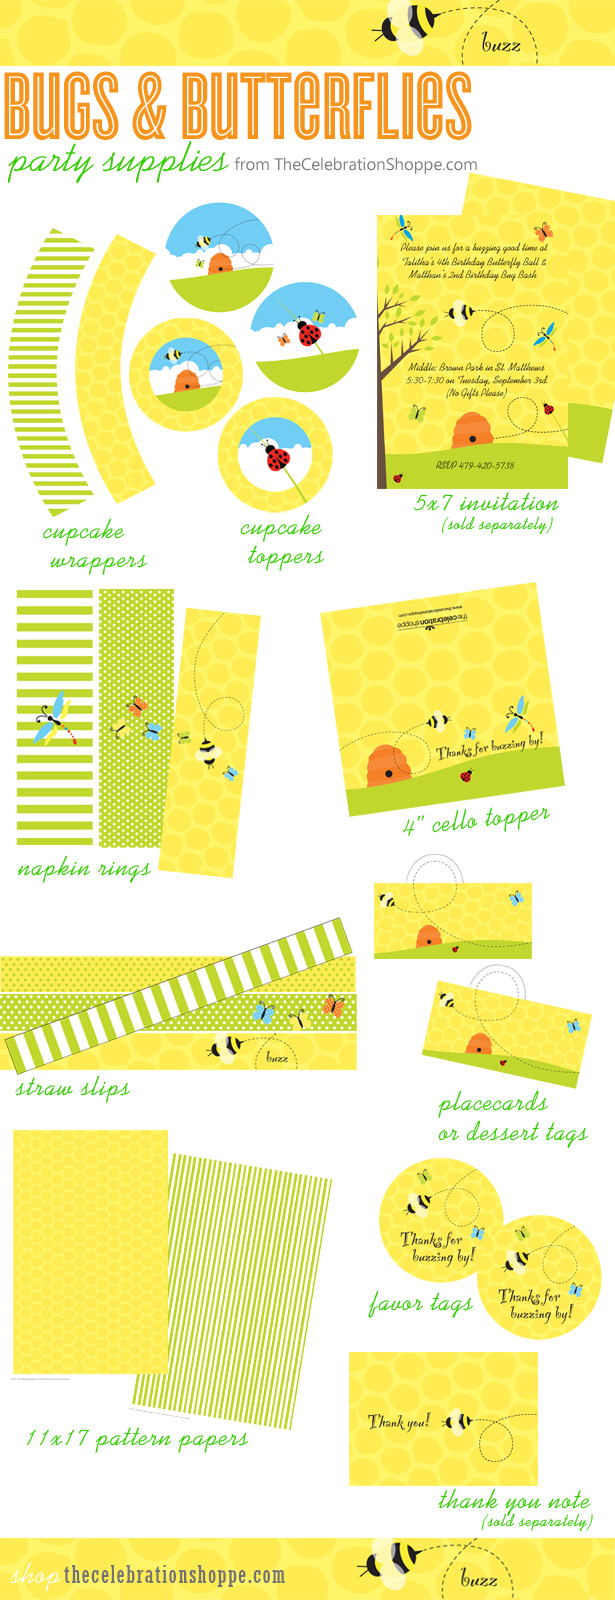 Bugs butterflies party supplies the celebration shoppe kb